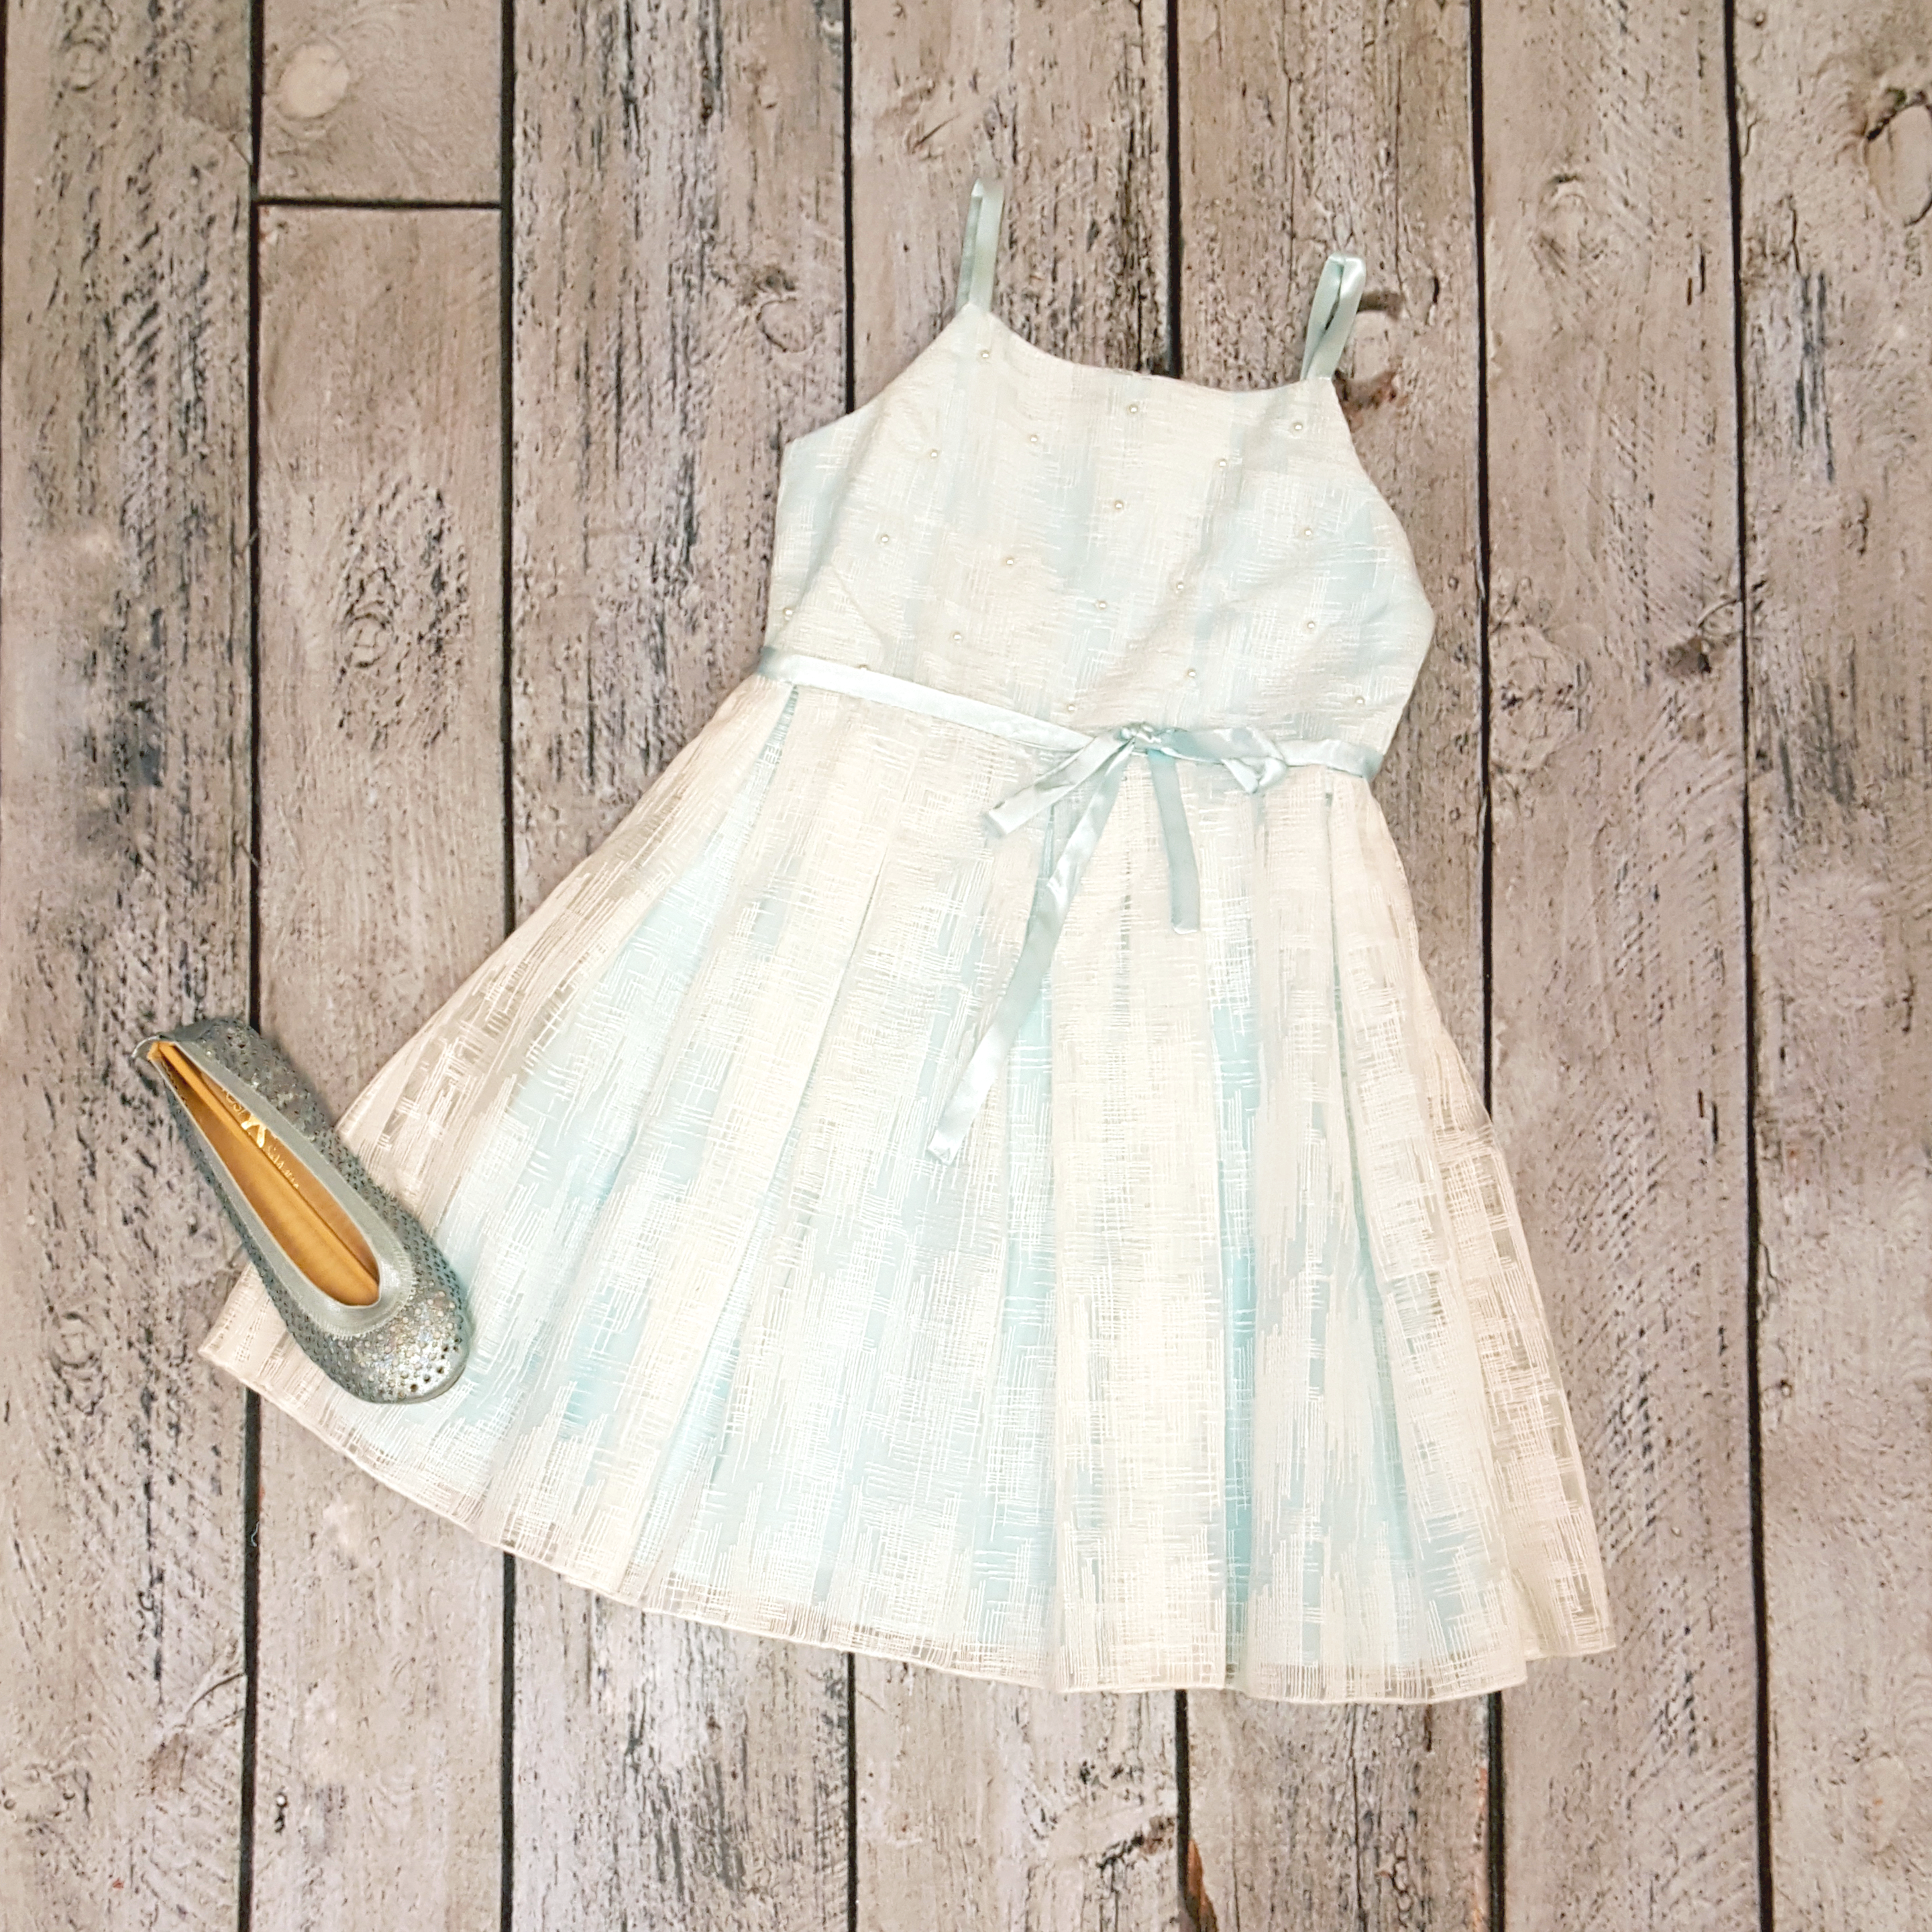 Blue/White dress wiith pearl studs by Biscotti